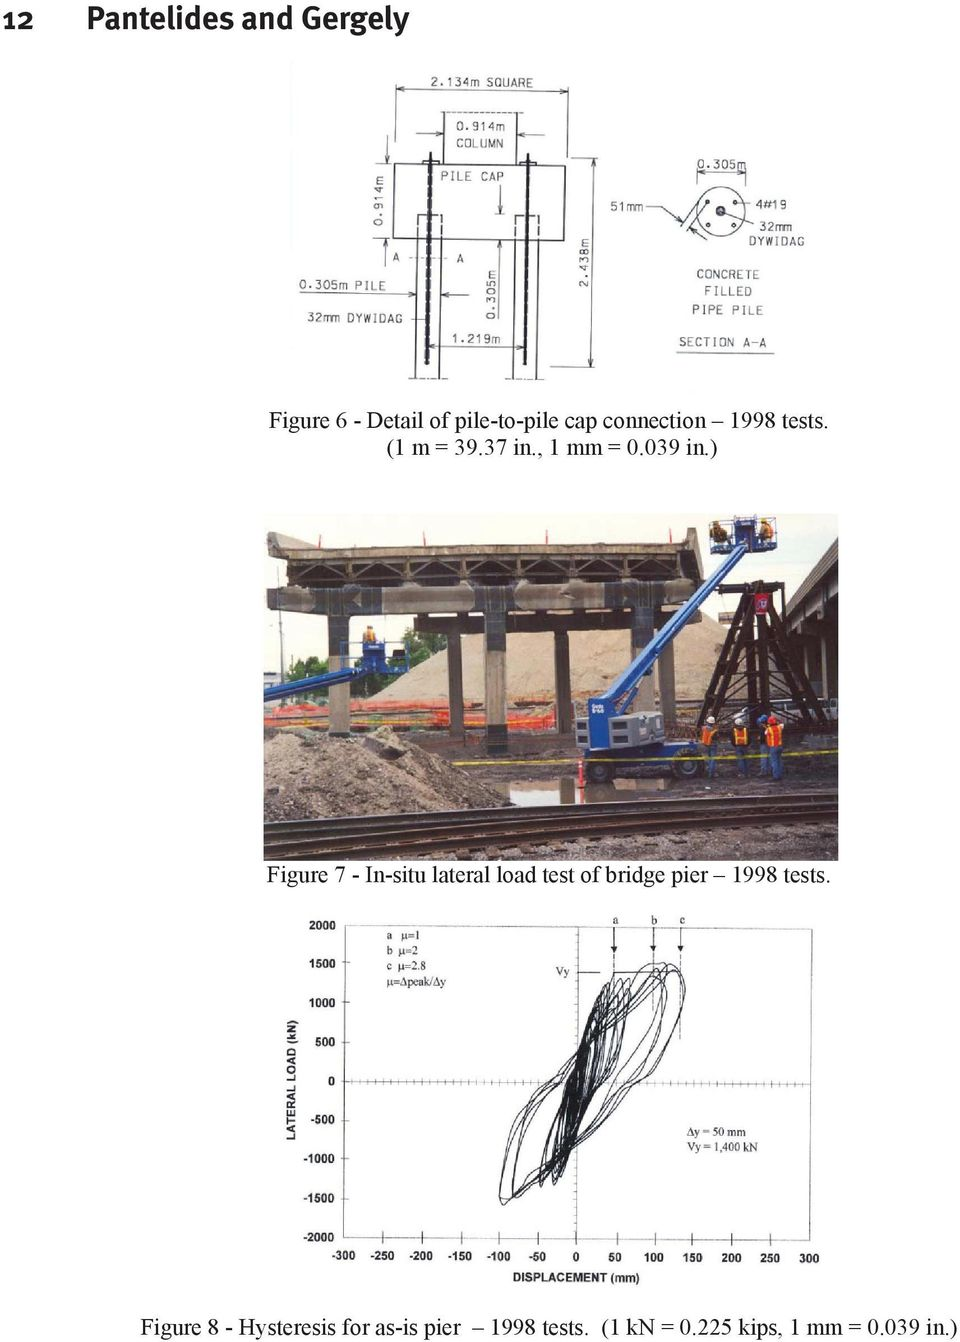 ) Figure 7 - In-situ lateral load test of bridge pier 1998 tests.